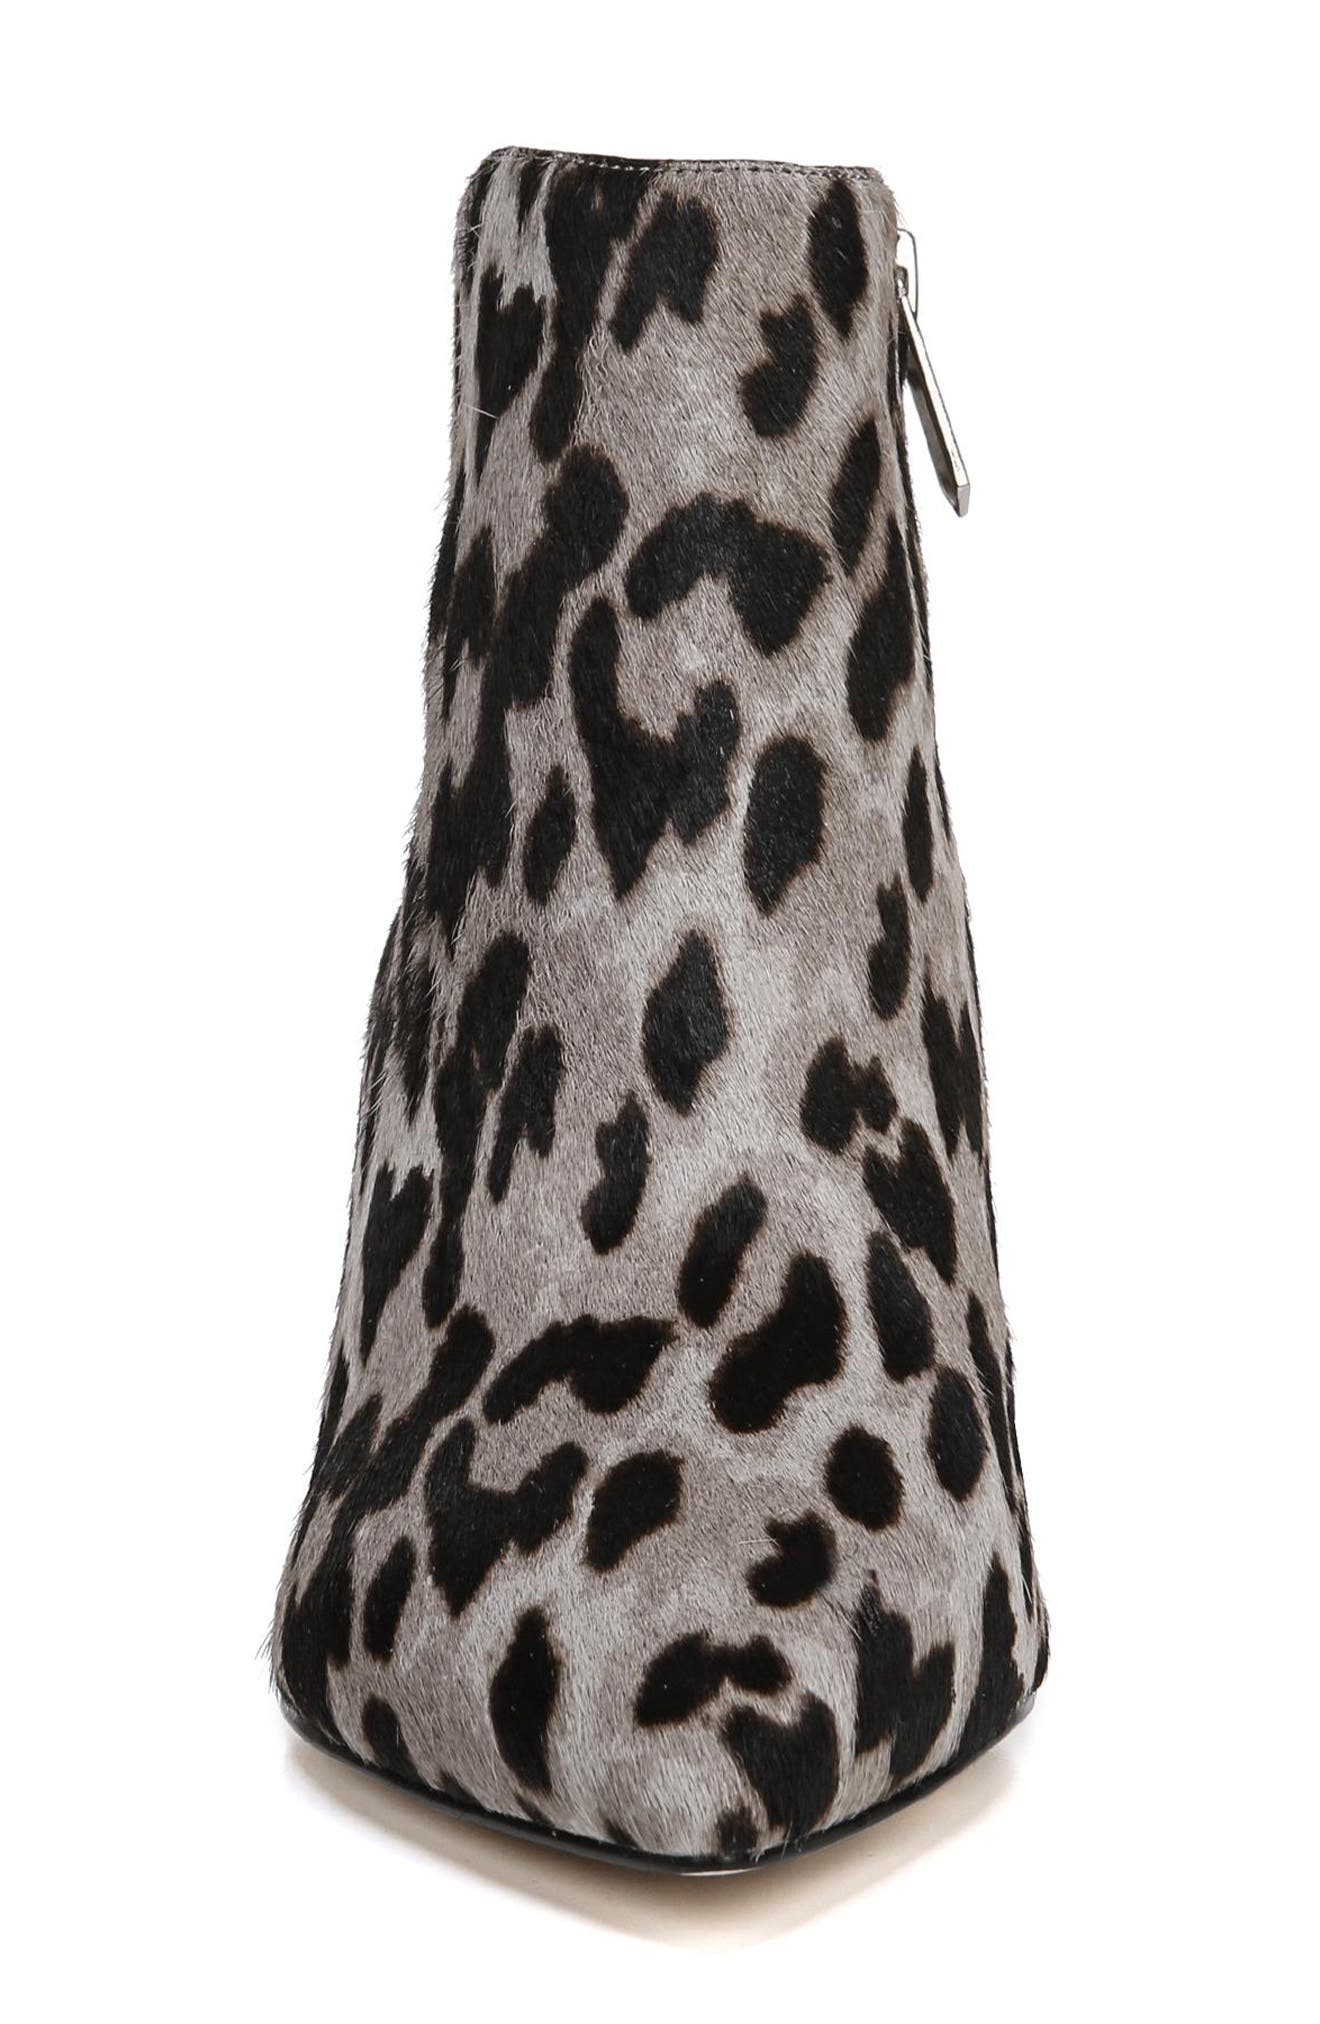 Kinzey Genuine Calf Hair Pointy Toe Bootie,                             Alternate thumbnail 4, color,                             GREY LEOPARD BRAHMA HAIR